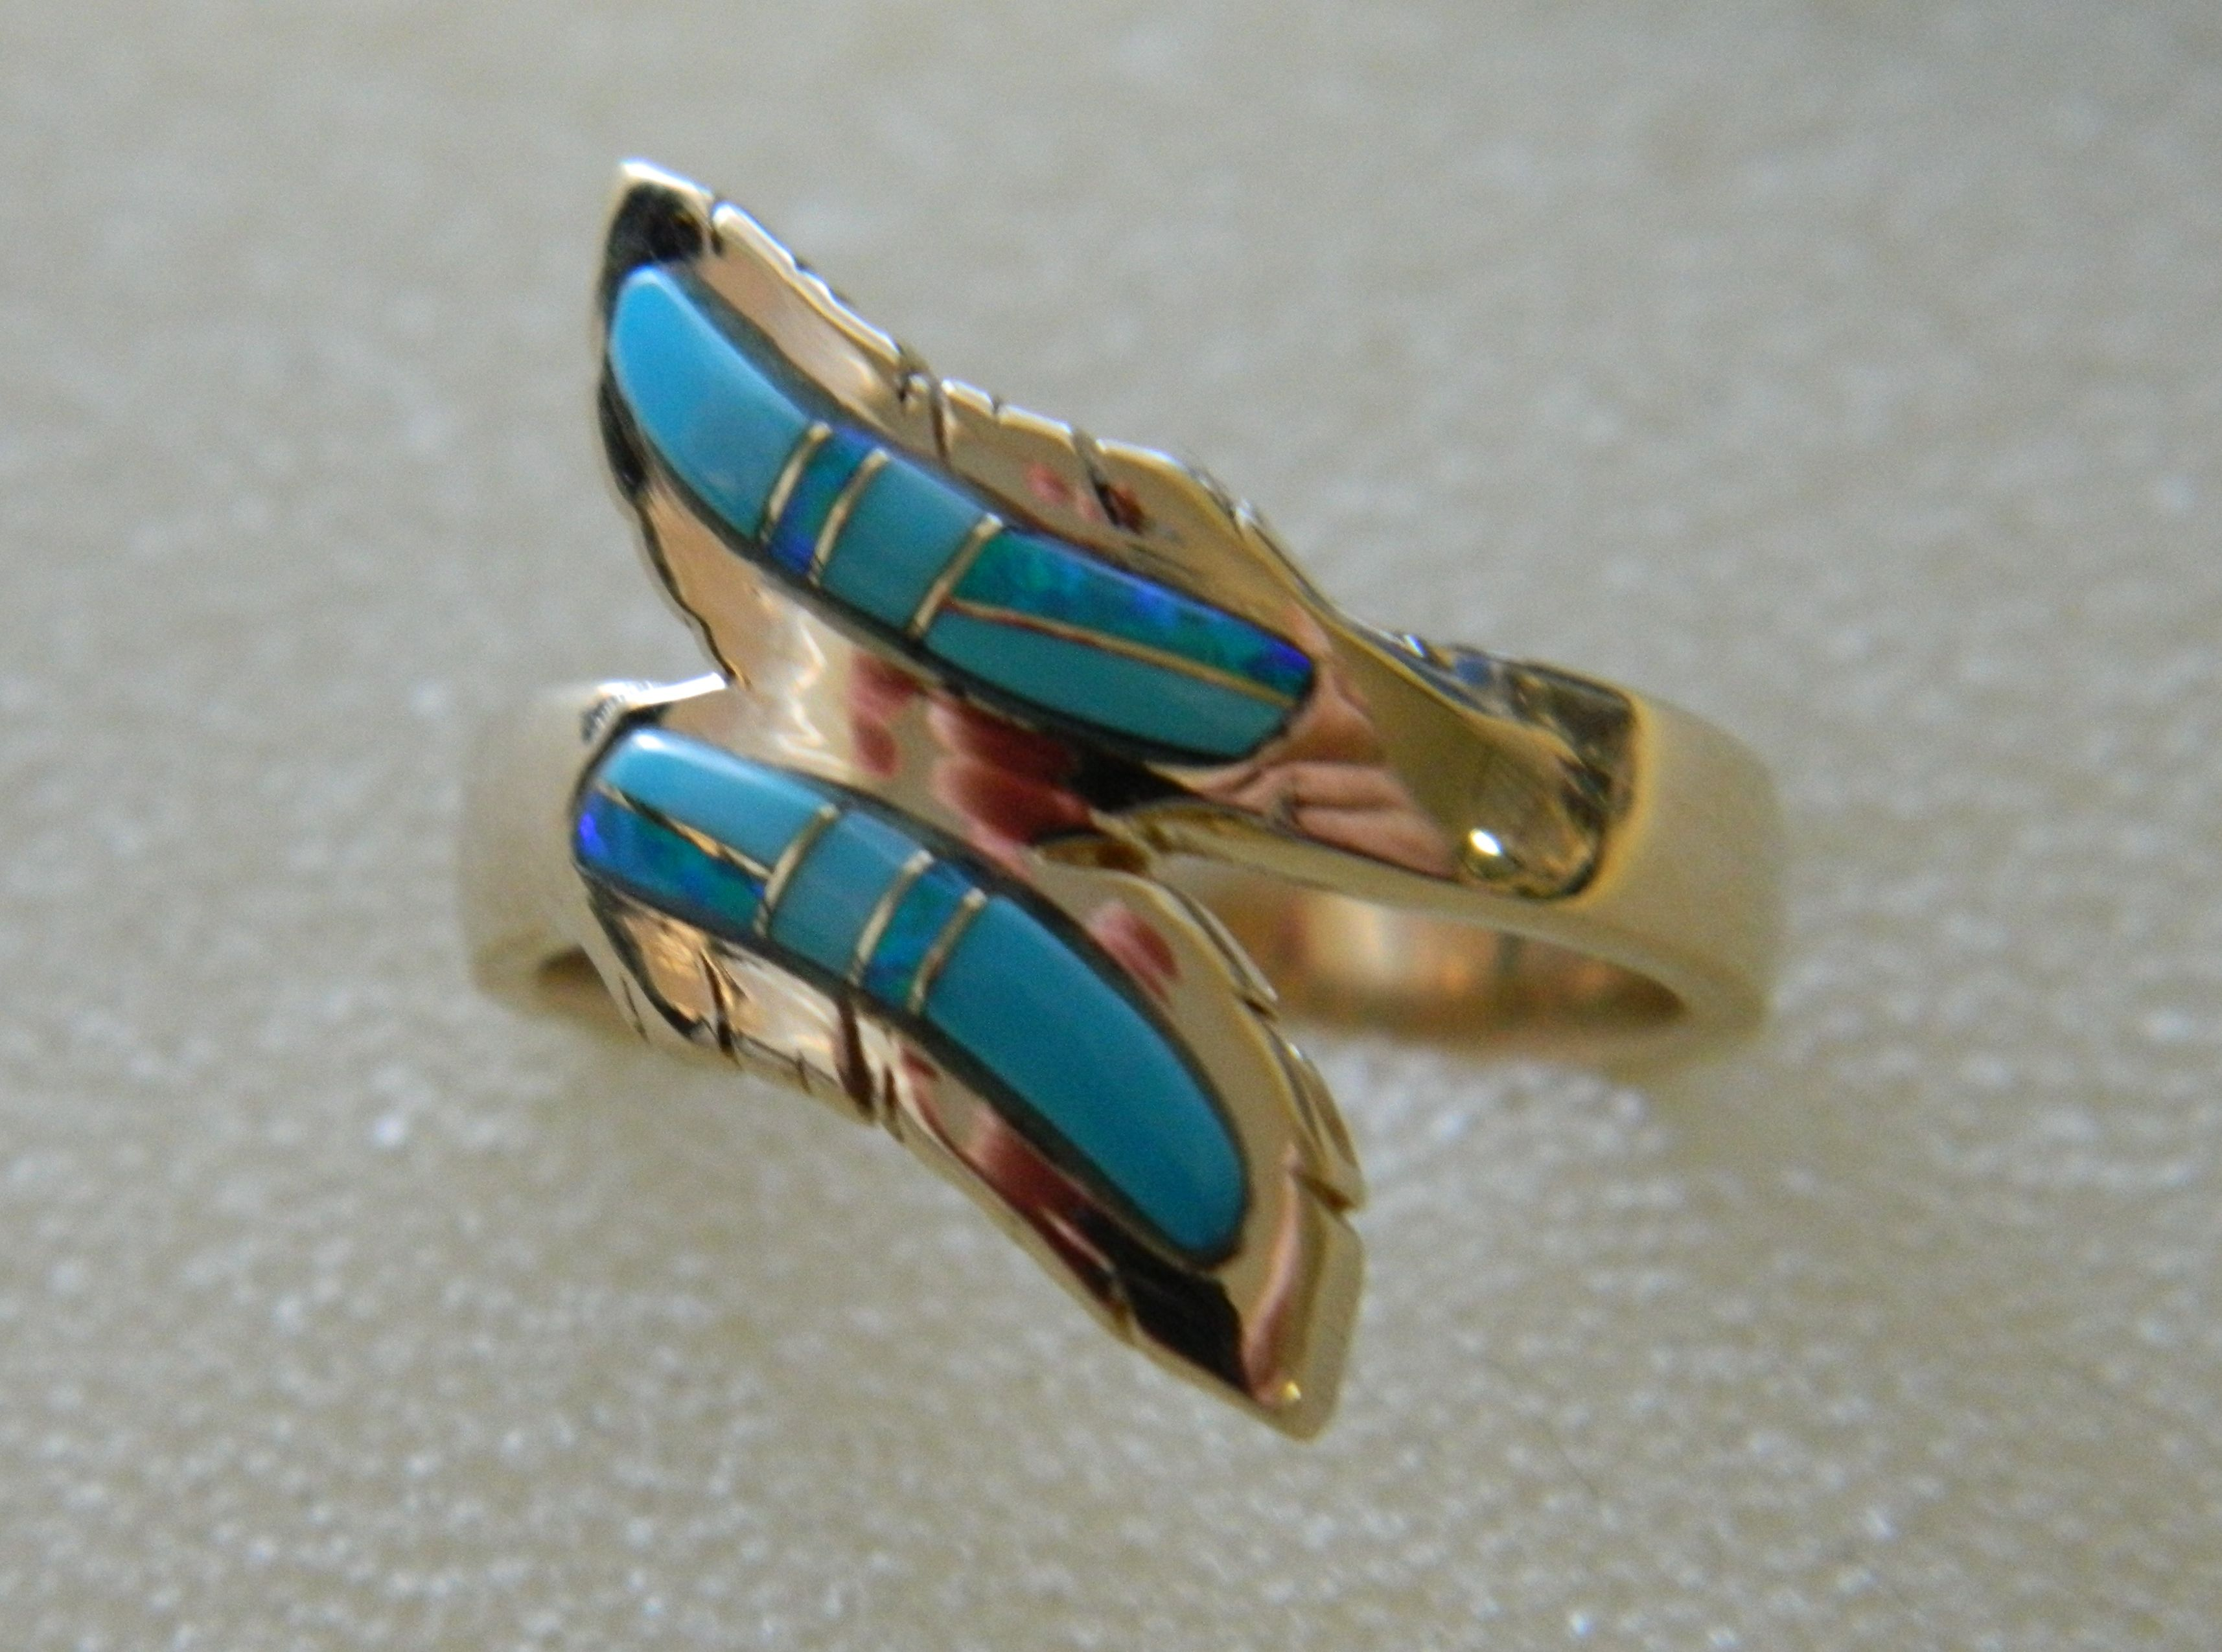 T243 with sleeping beauty turquoise and blue opal